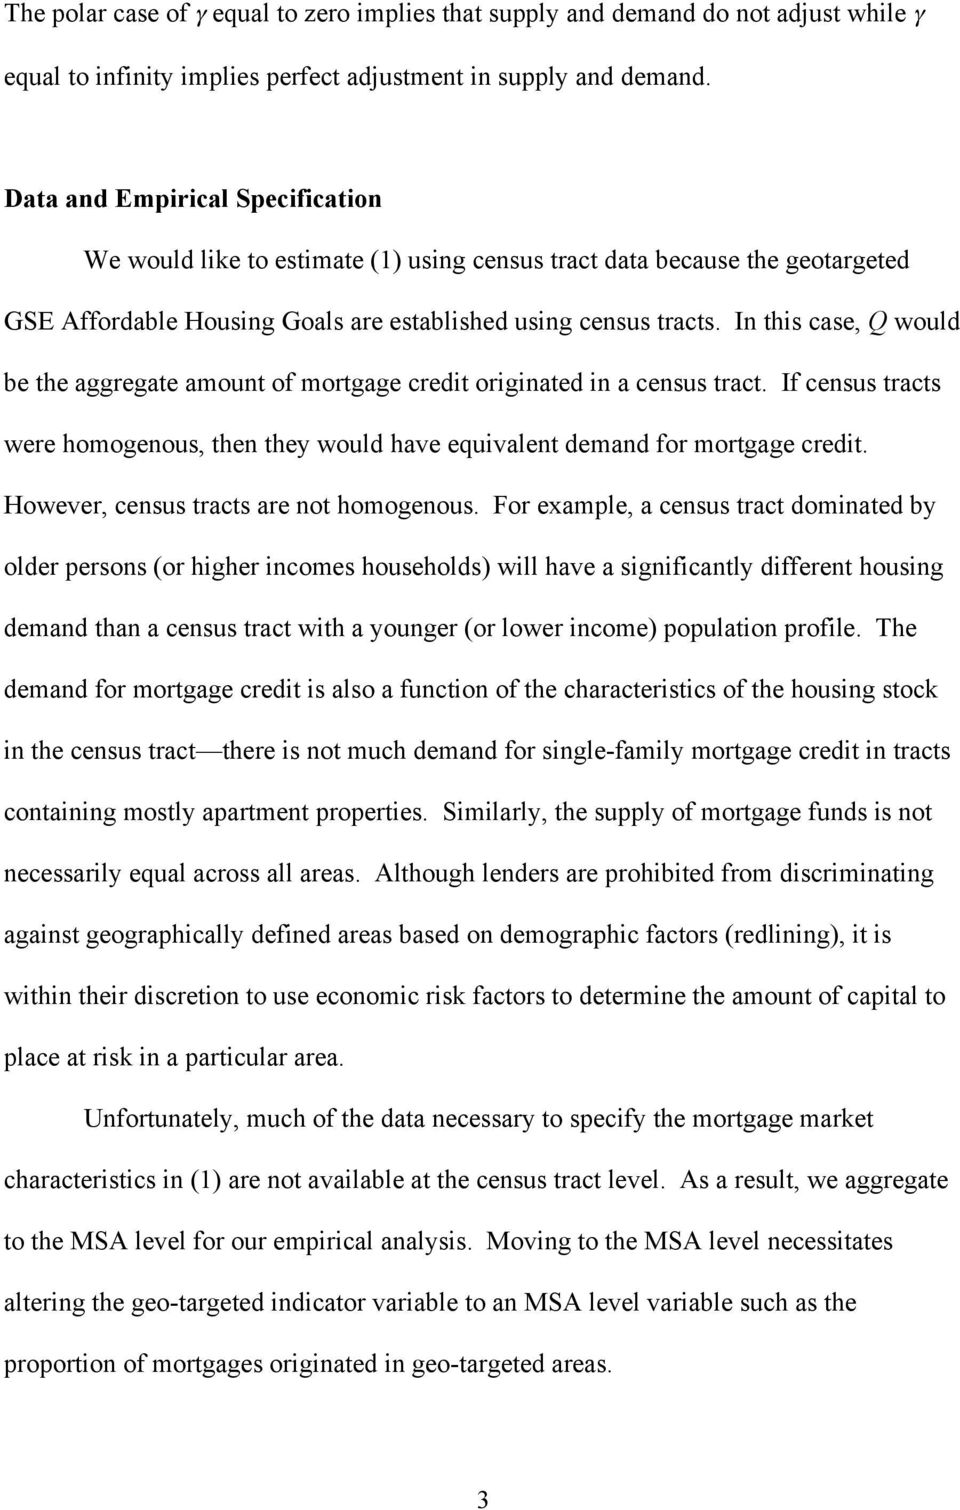 In this case, Q would be the aggregate amount of mortgage credit originated in a census tract. If census tracts were homogenous, then they would have equivalent demand for mortgage credit.